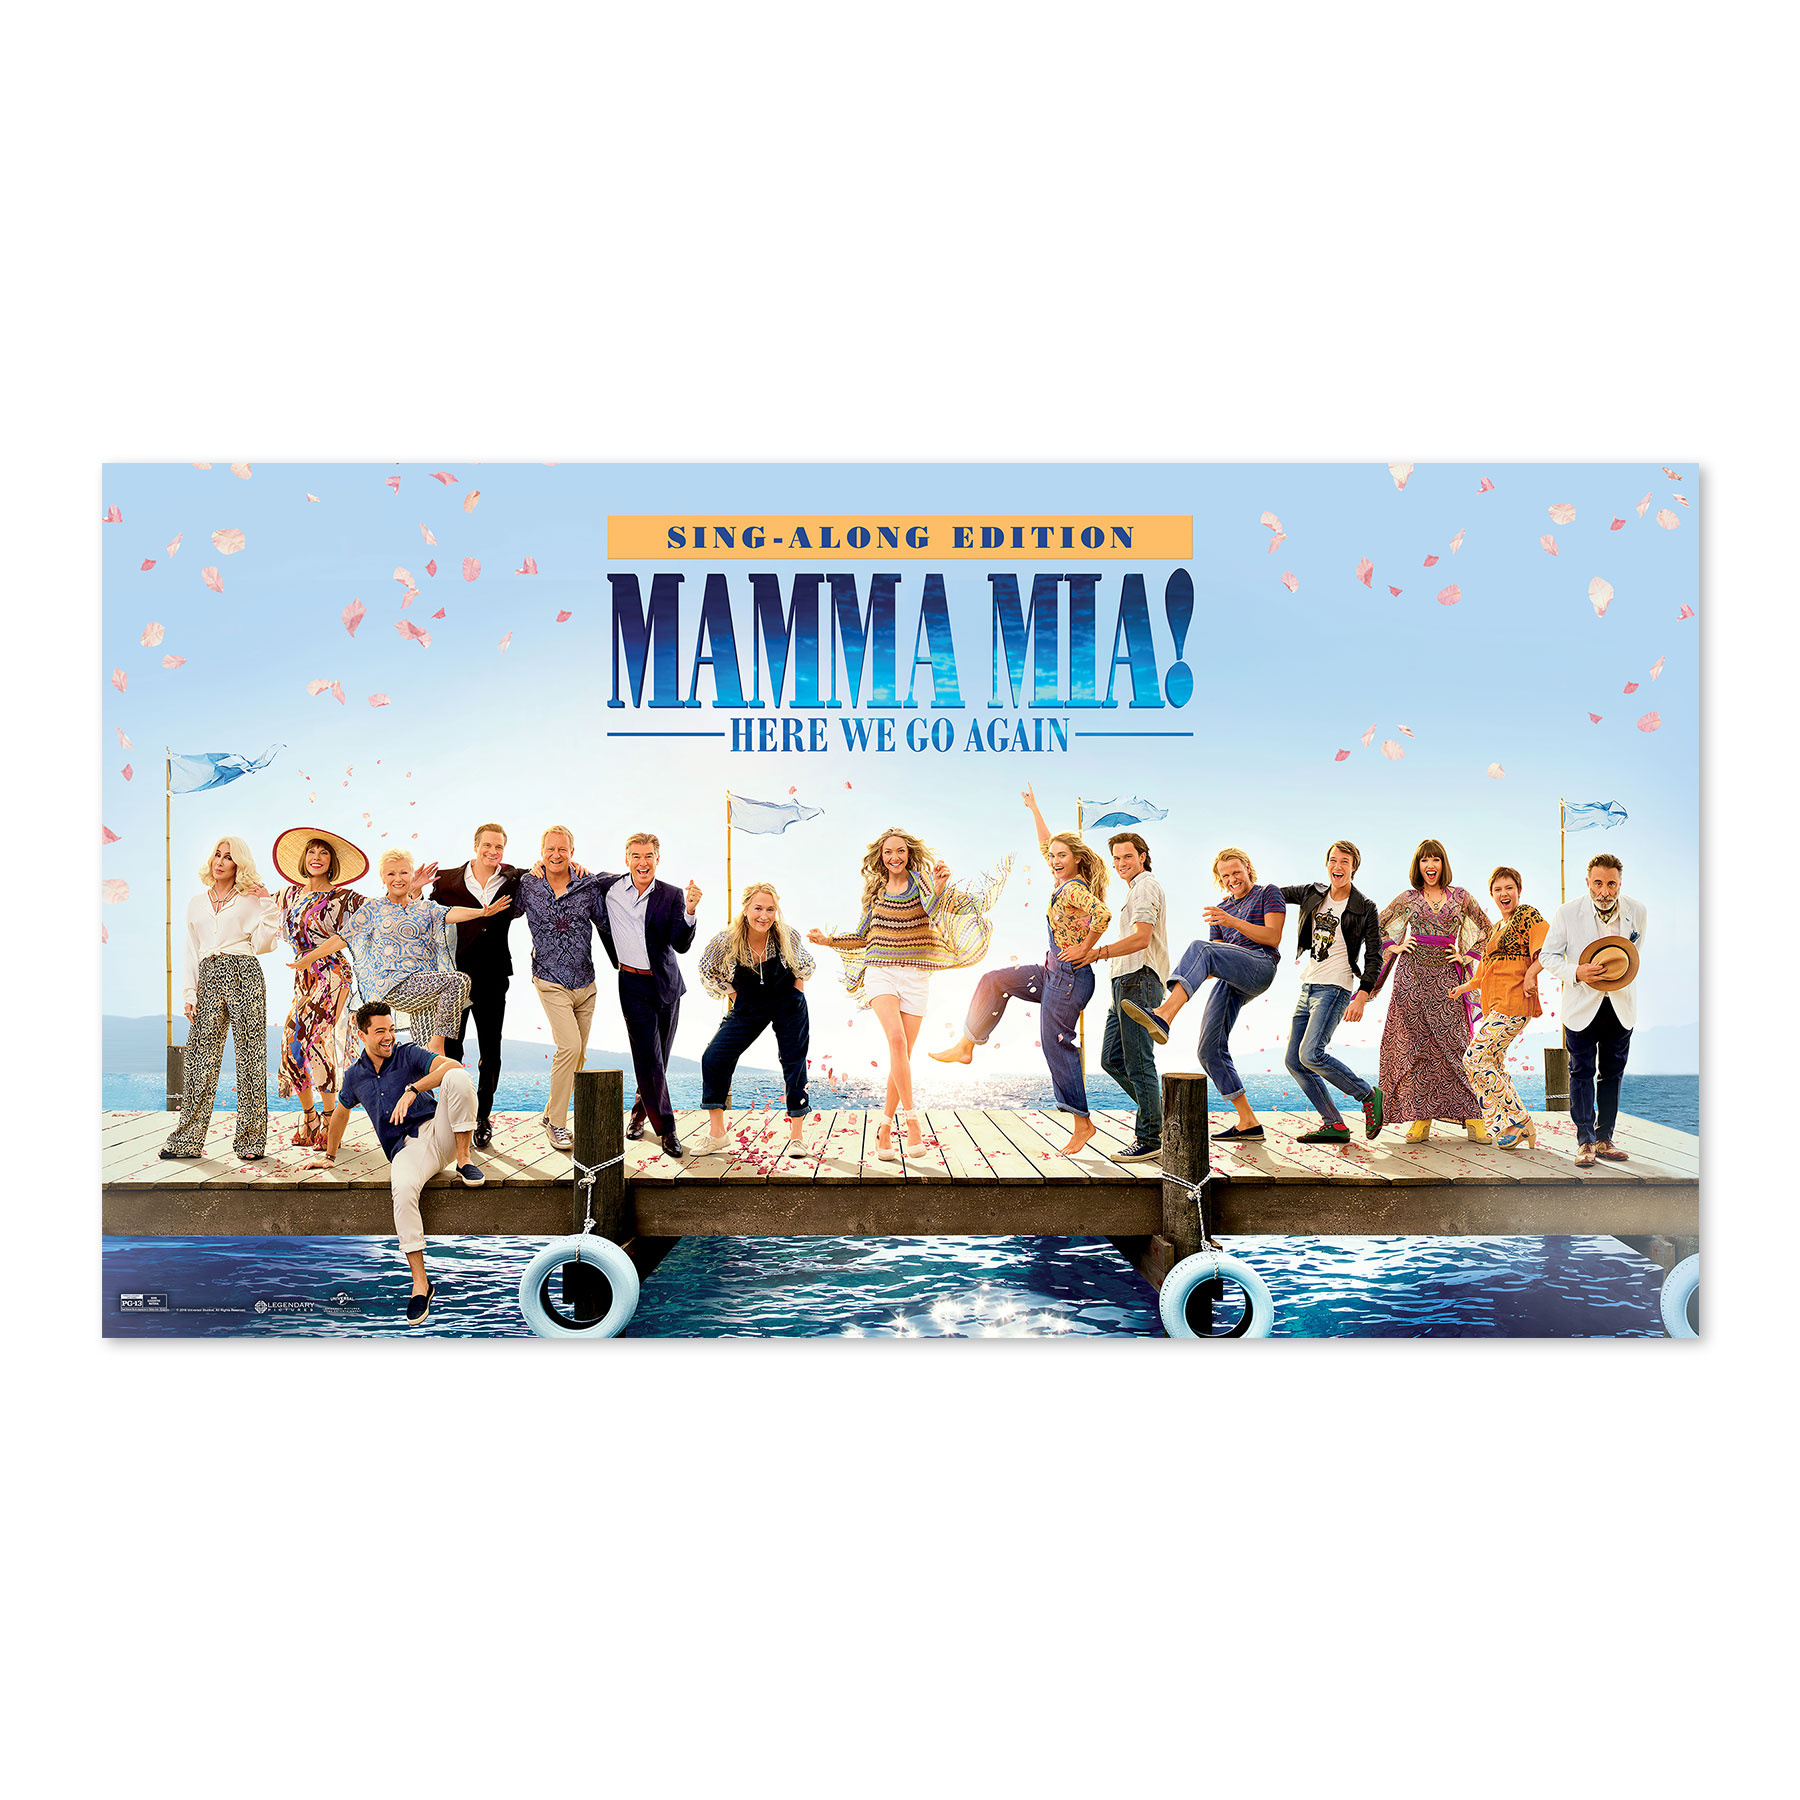 Mamma Mia Target New Release Sign